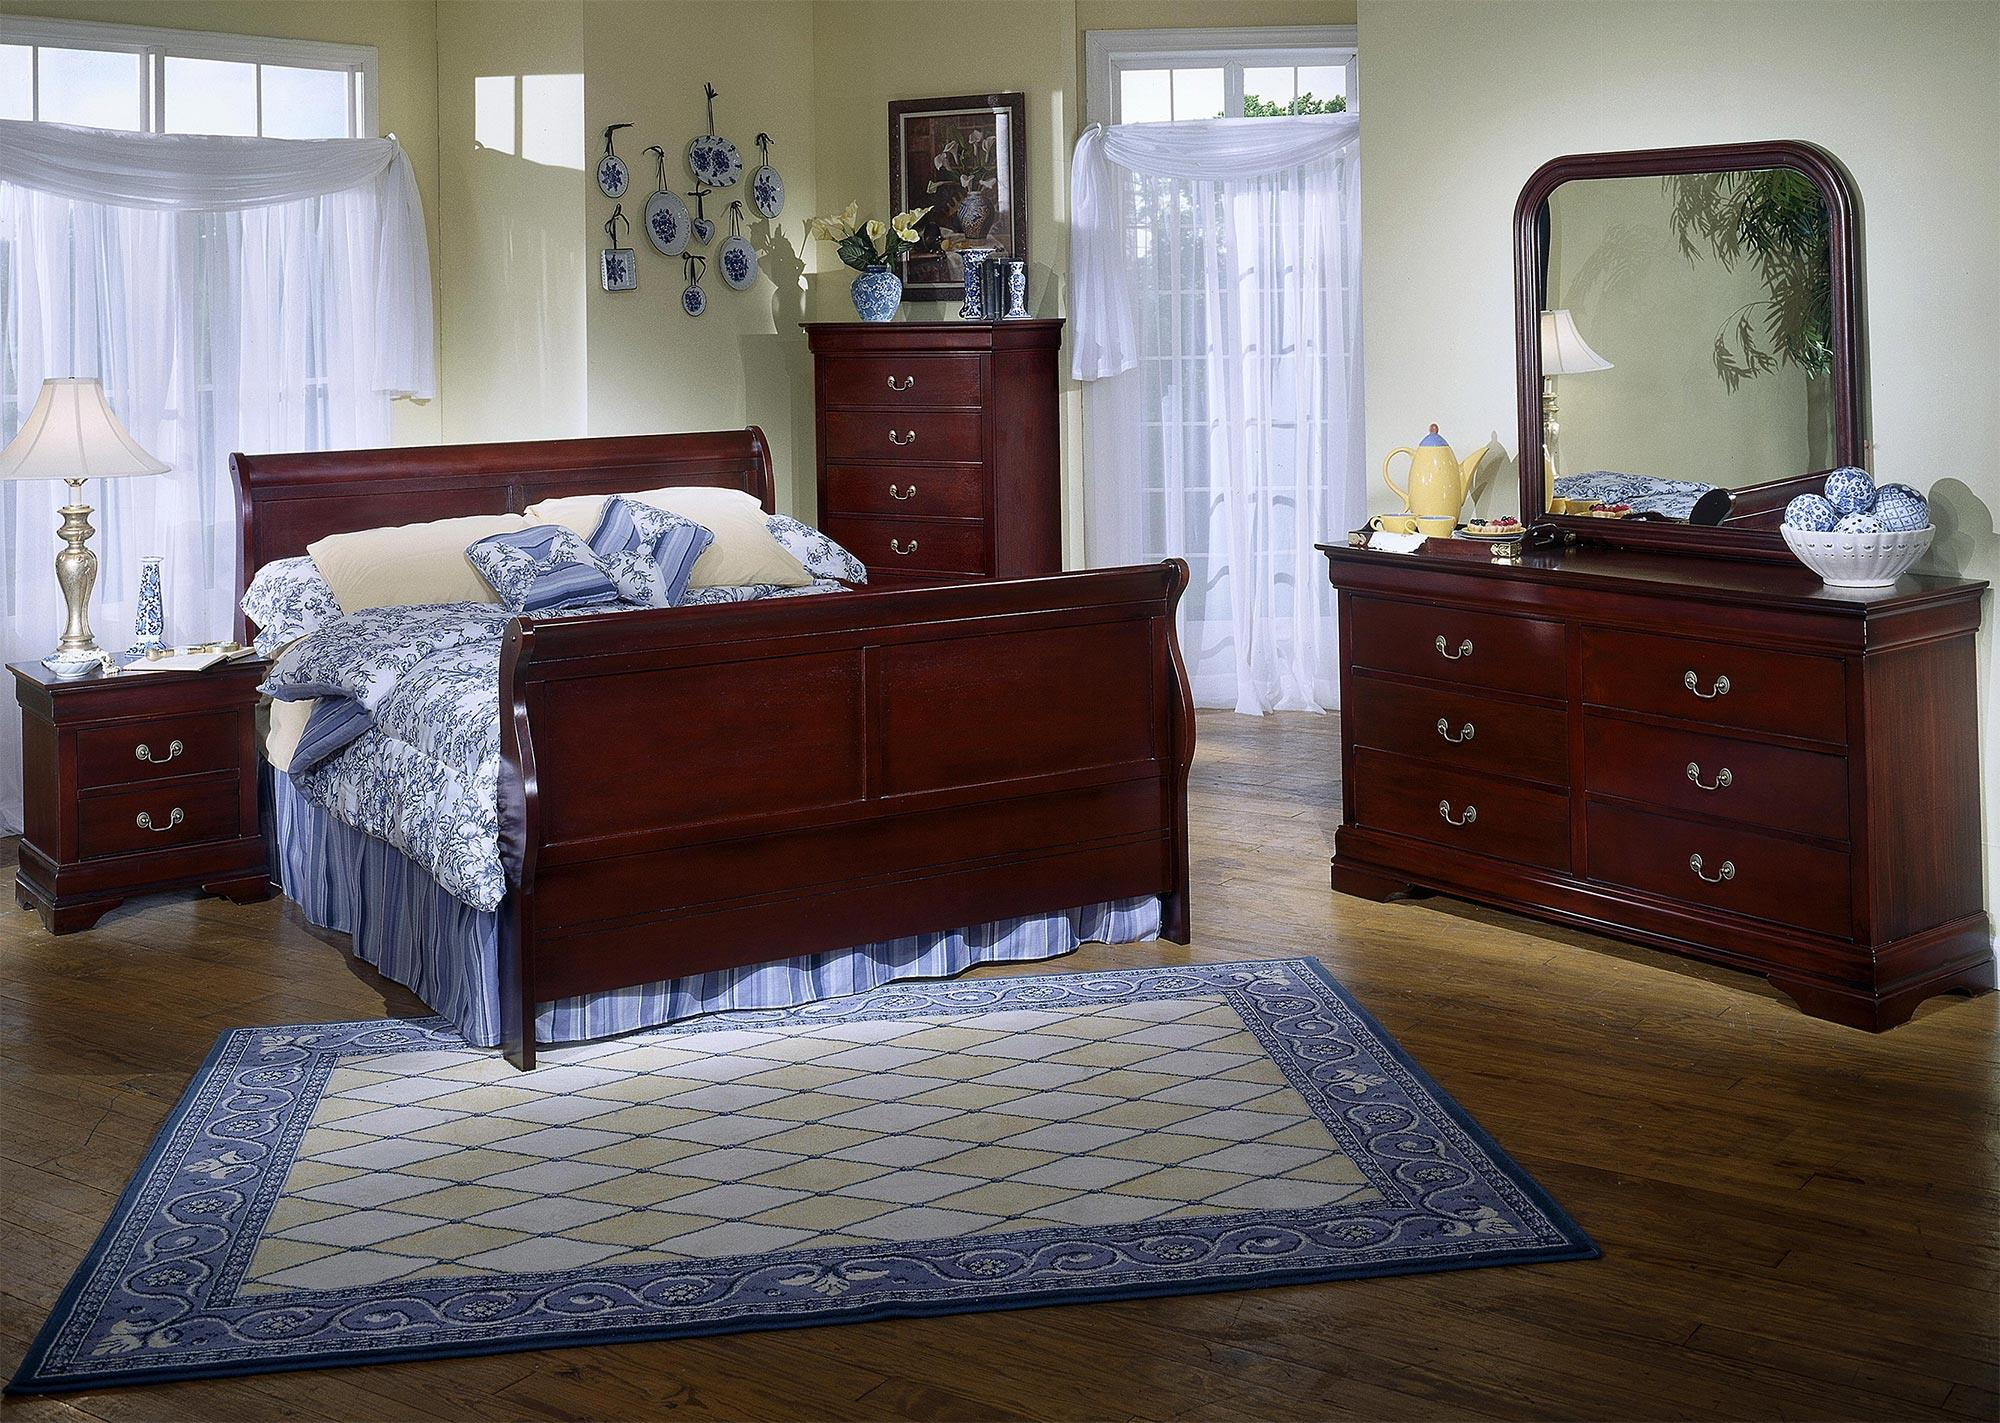 Lifestyle Louis Estates 5-Piece Queen Bedroom Set - Item Number: C5933K-5PC-QBR